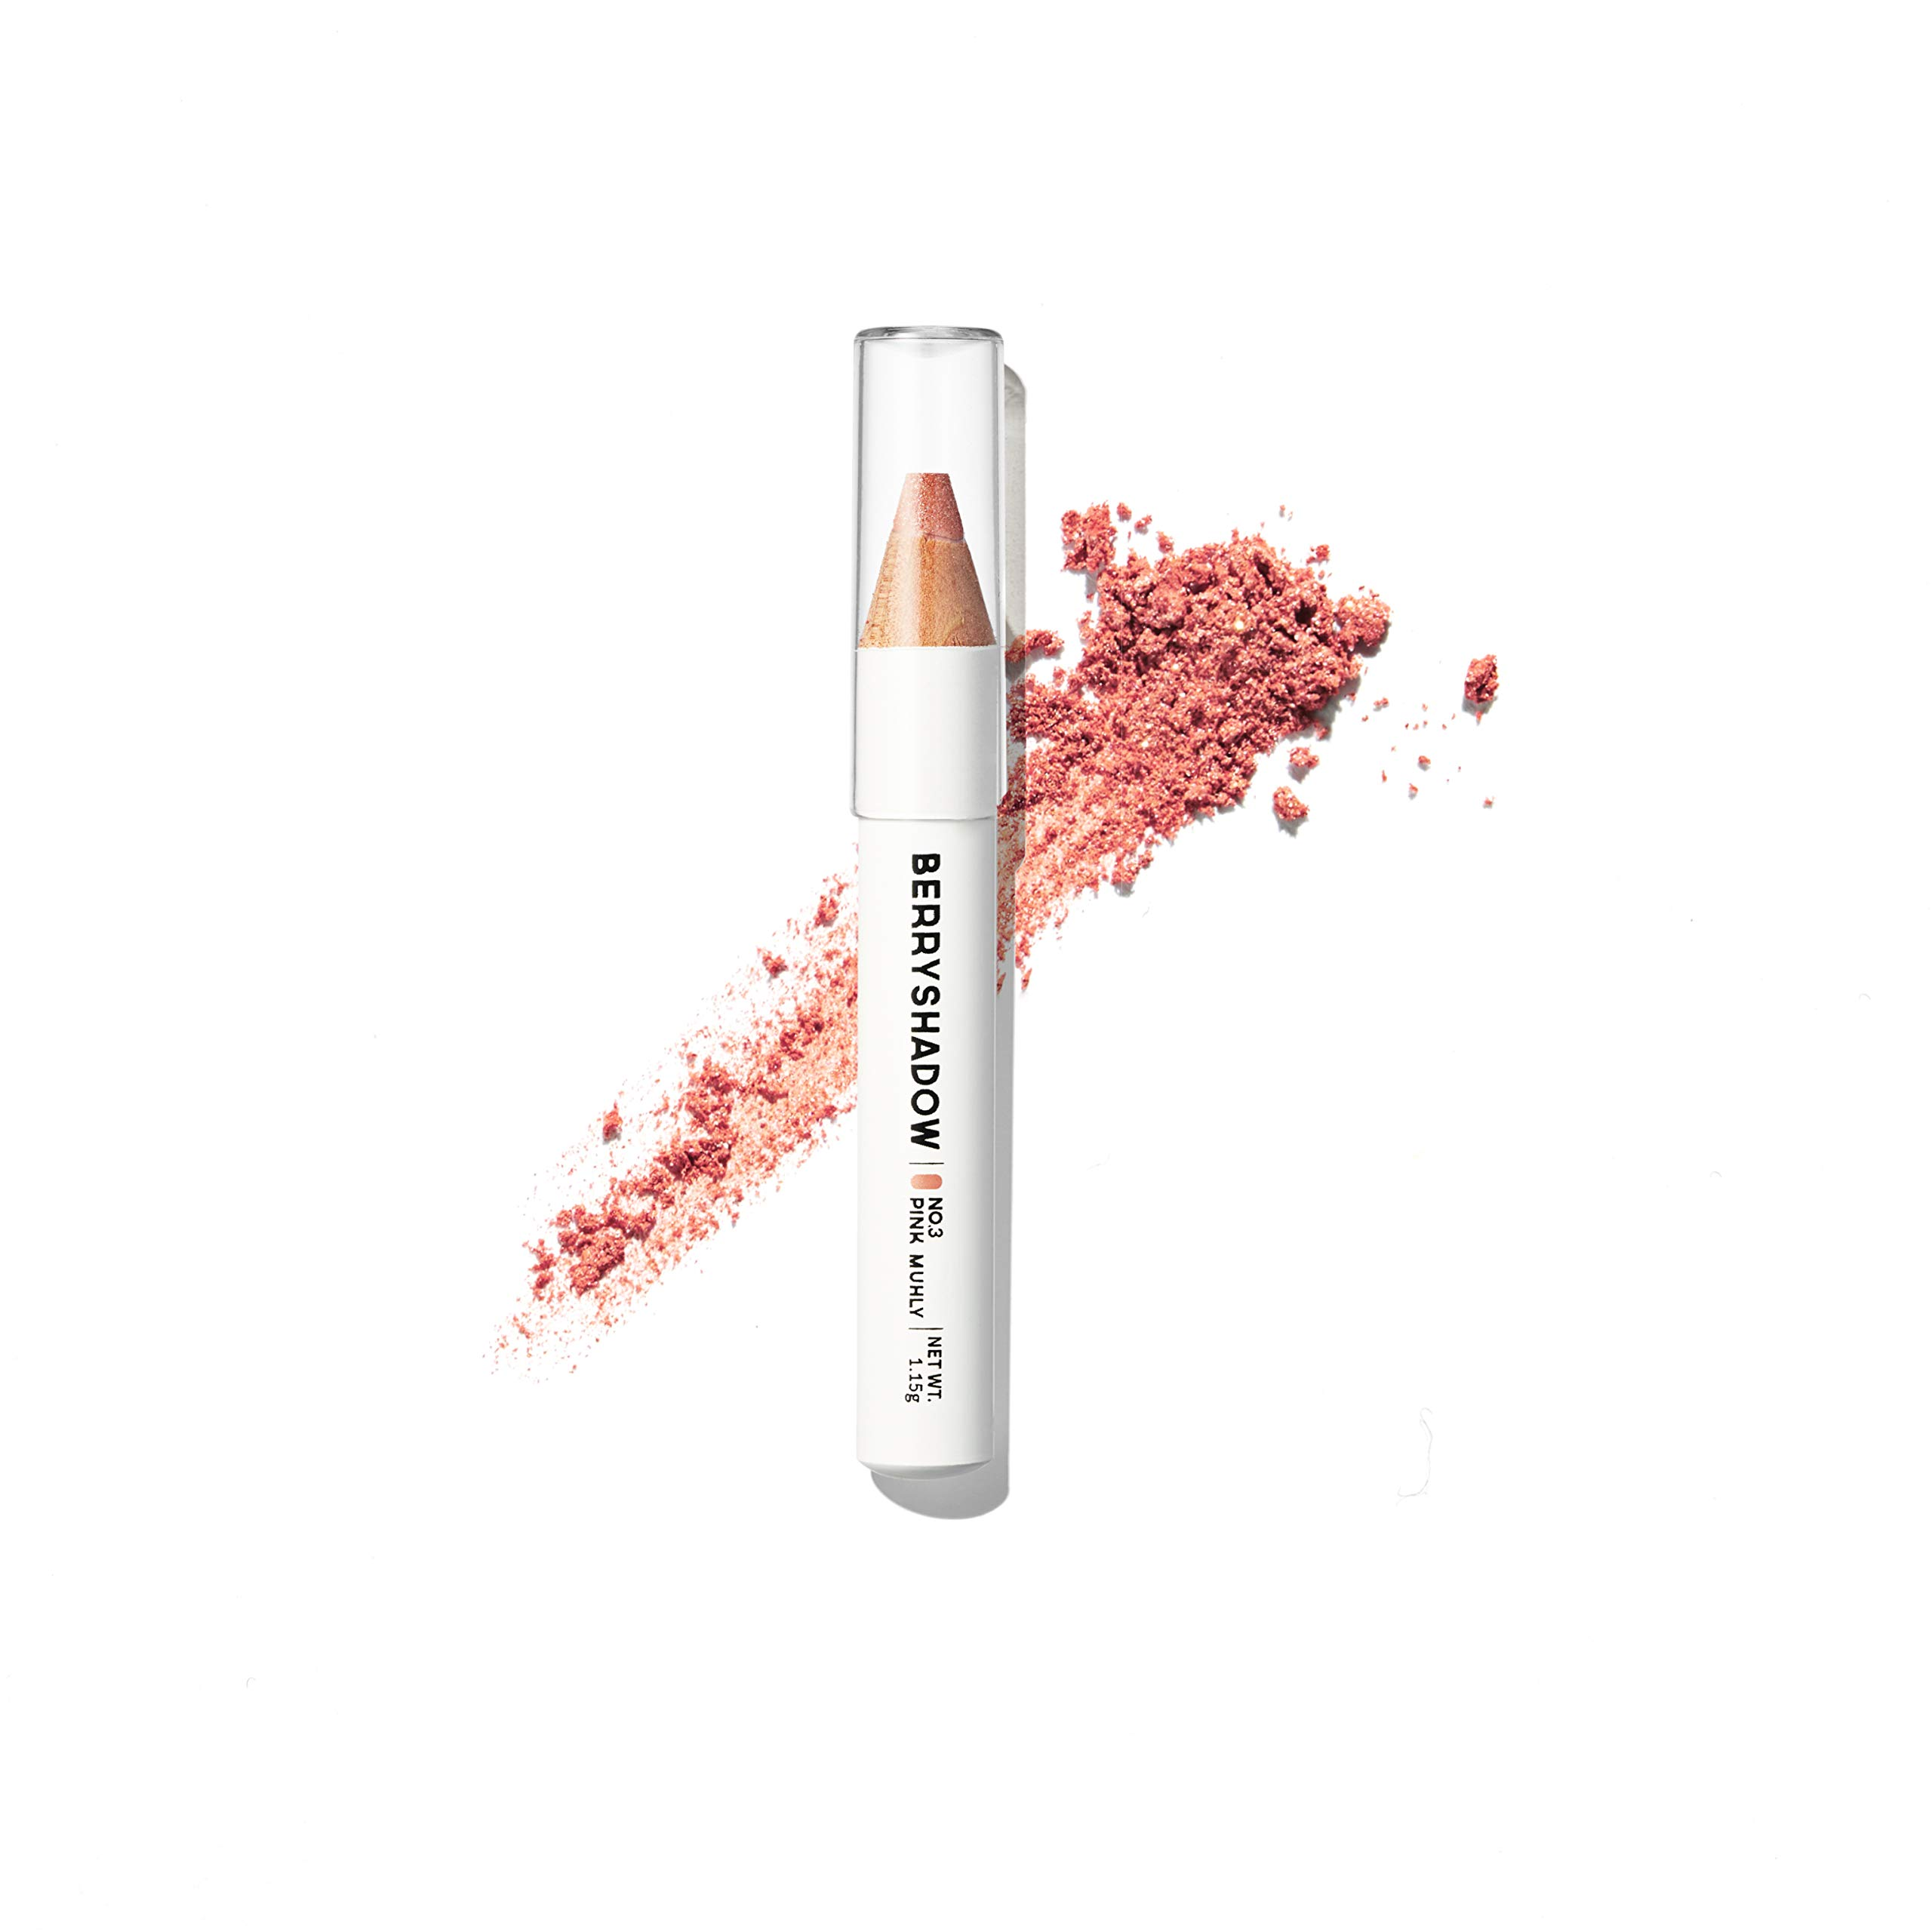 Piciberry Berryshadow(Pink Muhly), shinny and bright soft pearl powder pencil eyeshadow, shimmer, glitter, highlighter, long lasting formula